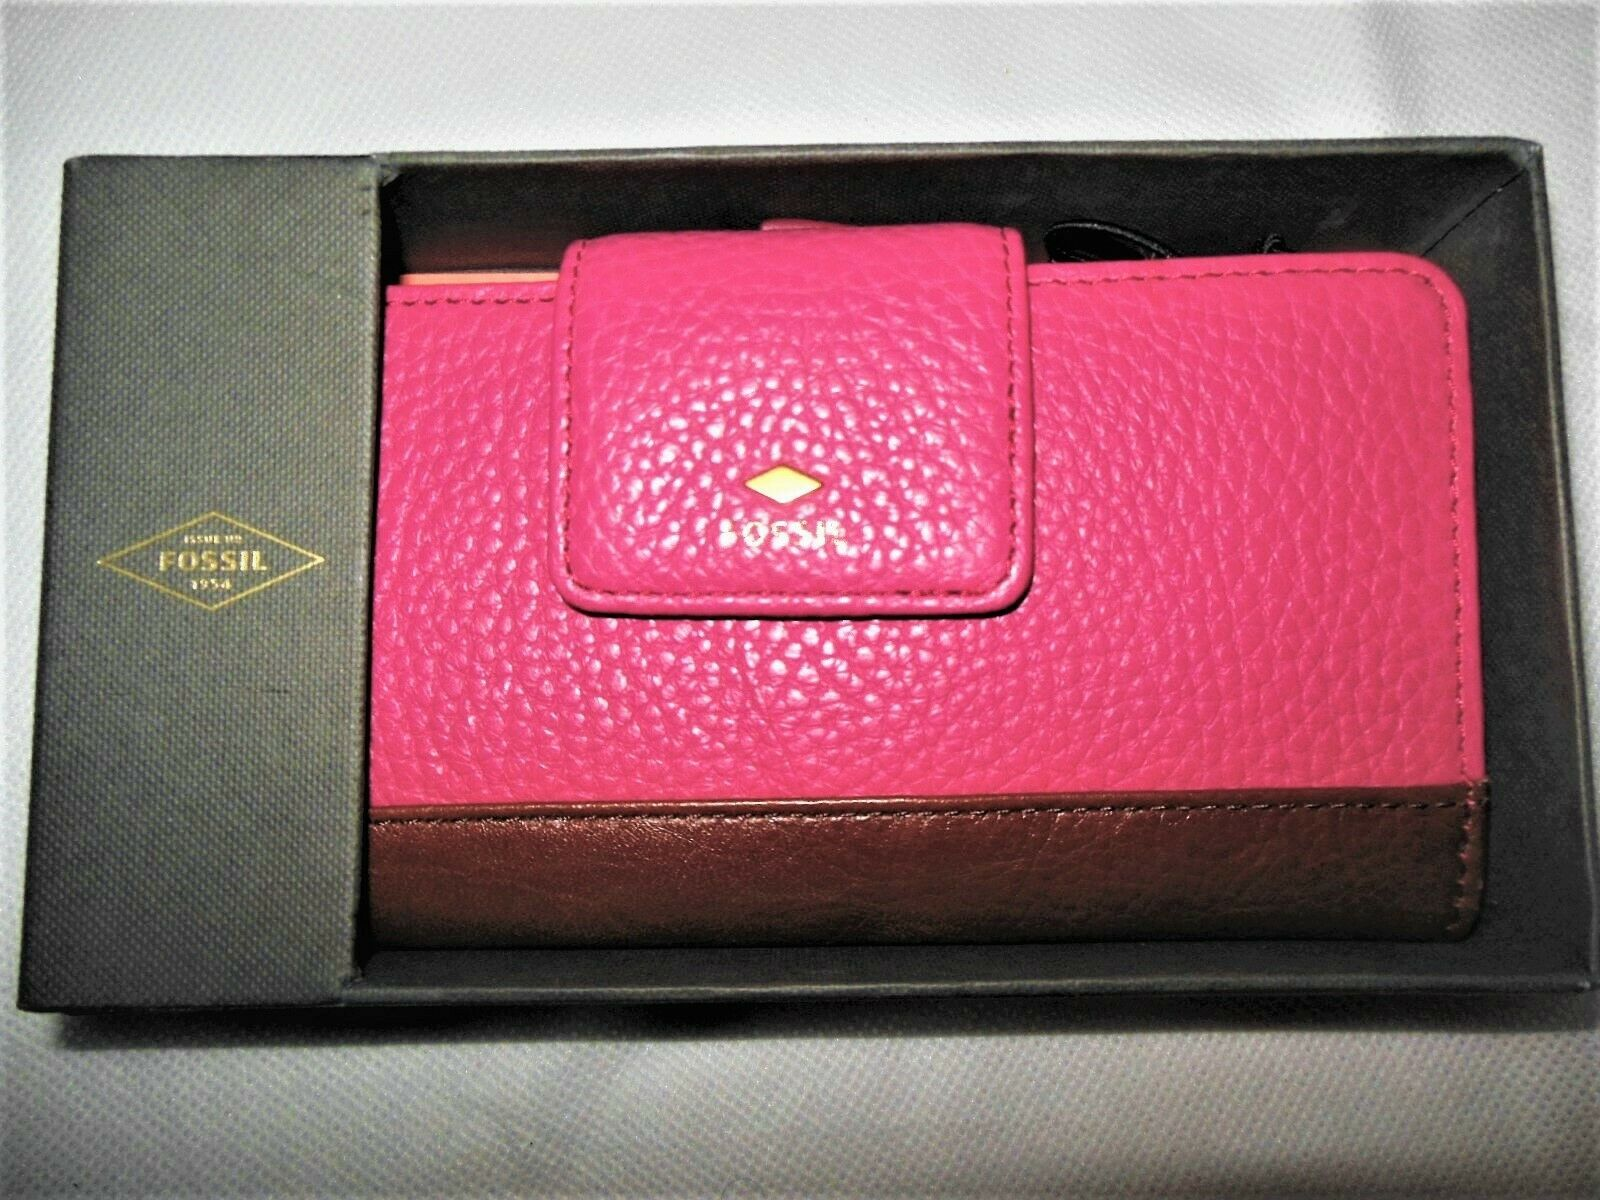 NEW Fossil Card Organizer Wallet Pink Pebble Mother's Day Leather Gift Boxed